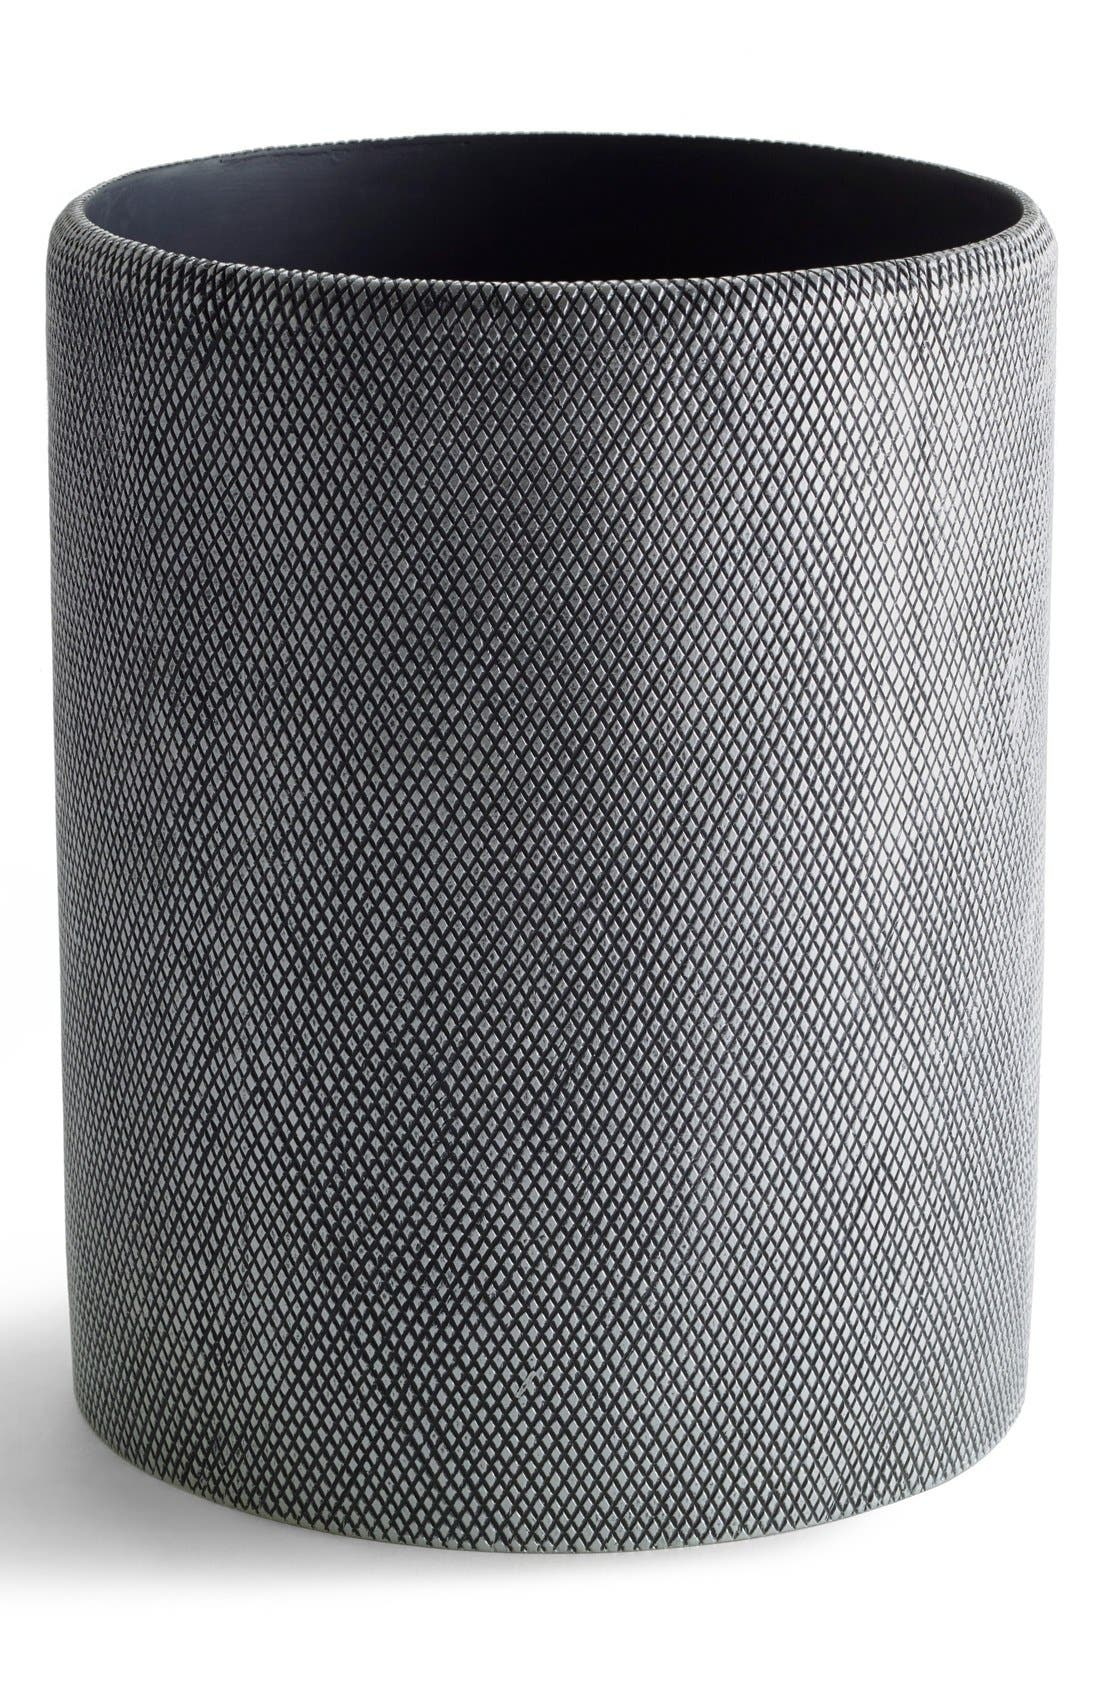 Etched Wastebasket,                             Main thumbnail 1, color,                             Grey